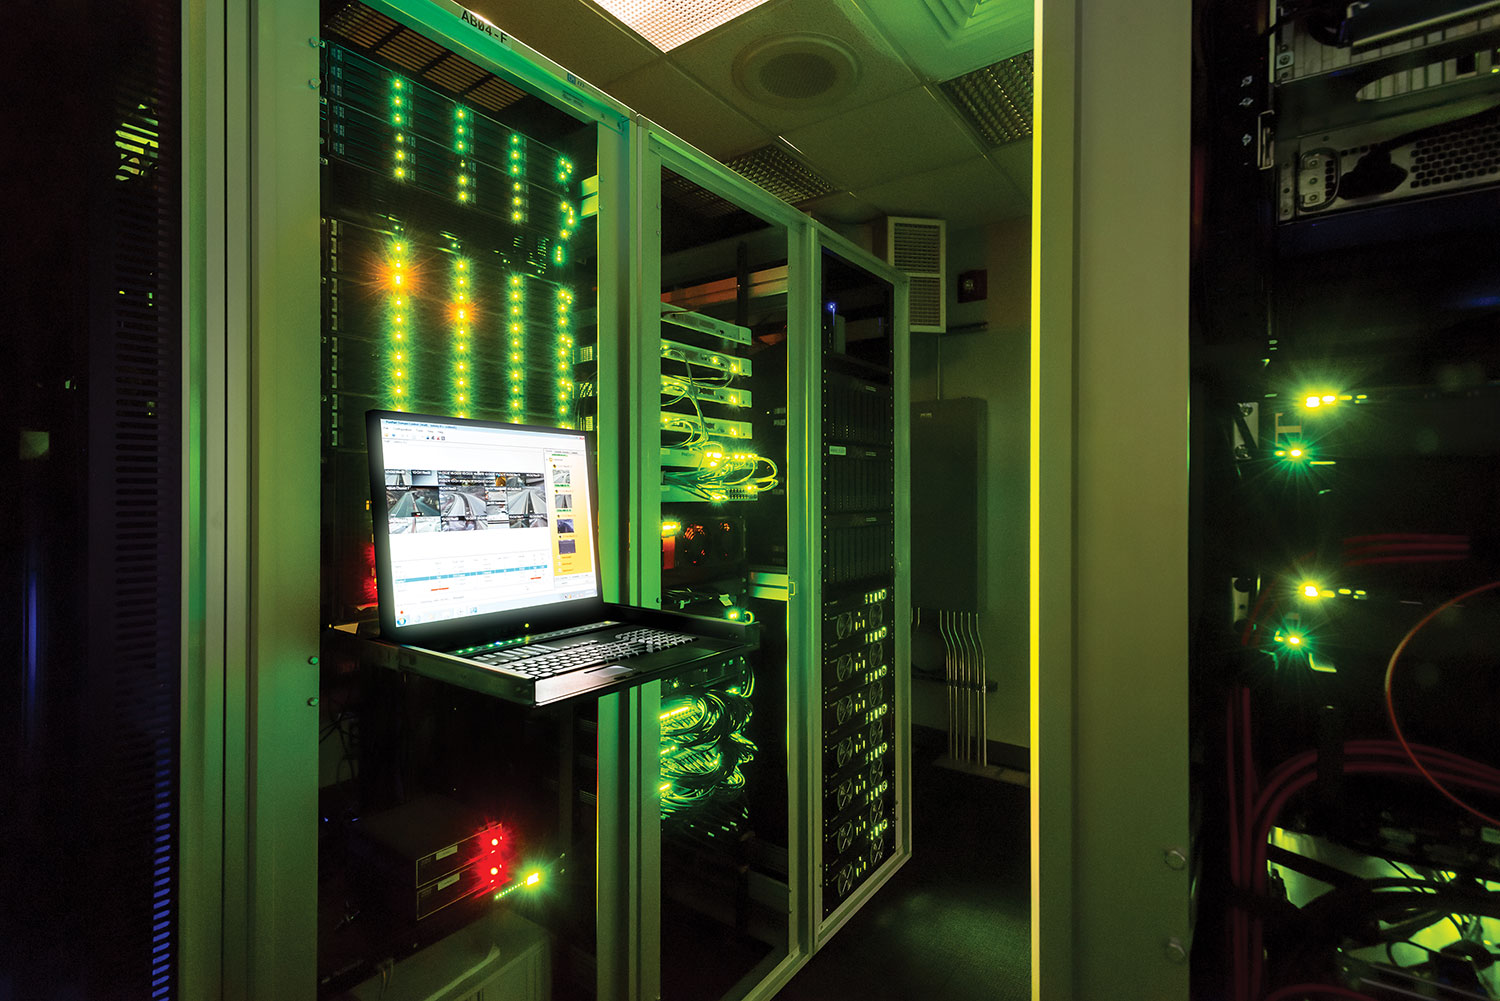 The DCS server room houses an array of redundant mission-critical gear. Locating the servers, switches, power supplies and other equipment in this room removes virtually all noise from the operators' work area.